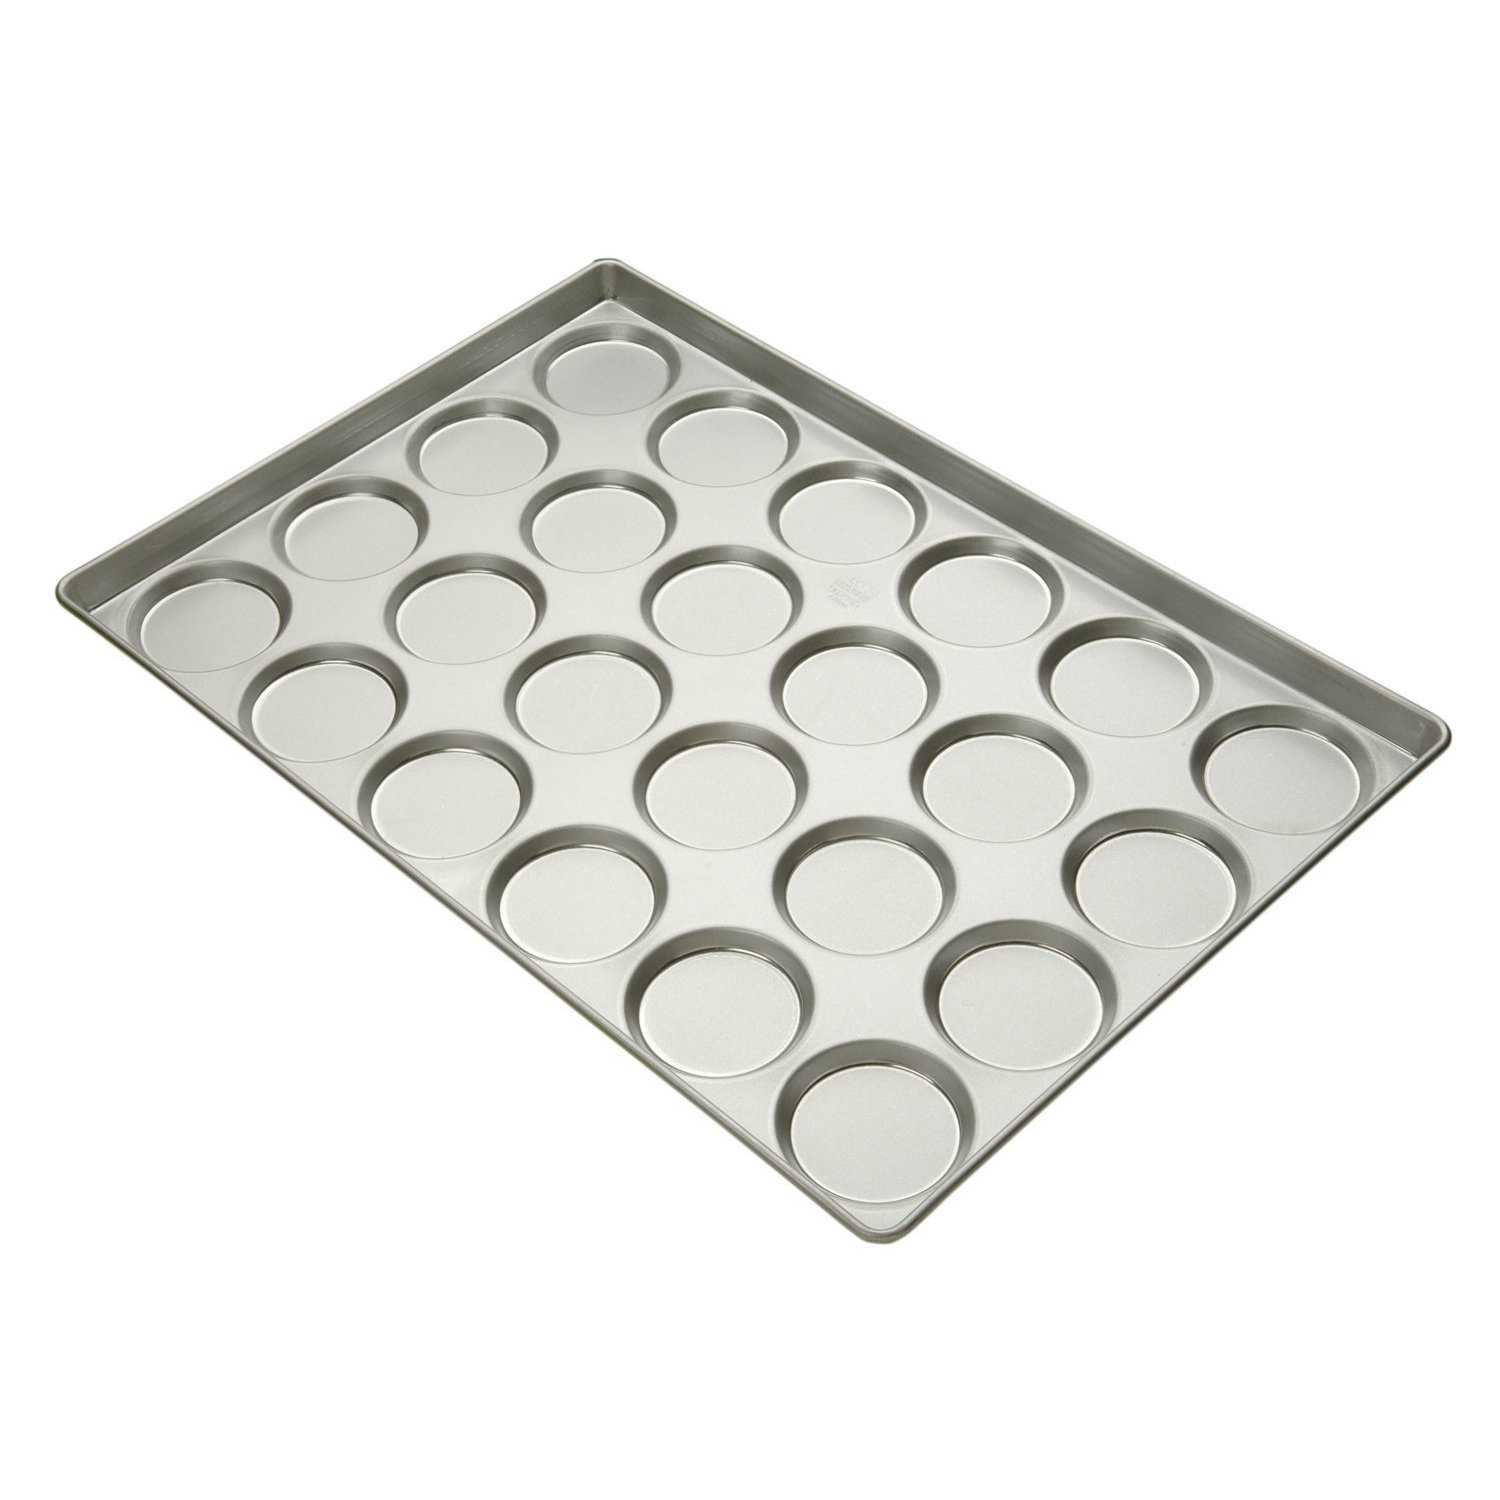 Focus Foodservice Commercial Bakeware 24-Count 3-3/4-Inch Hamburger Bun/Muffin Top Pan